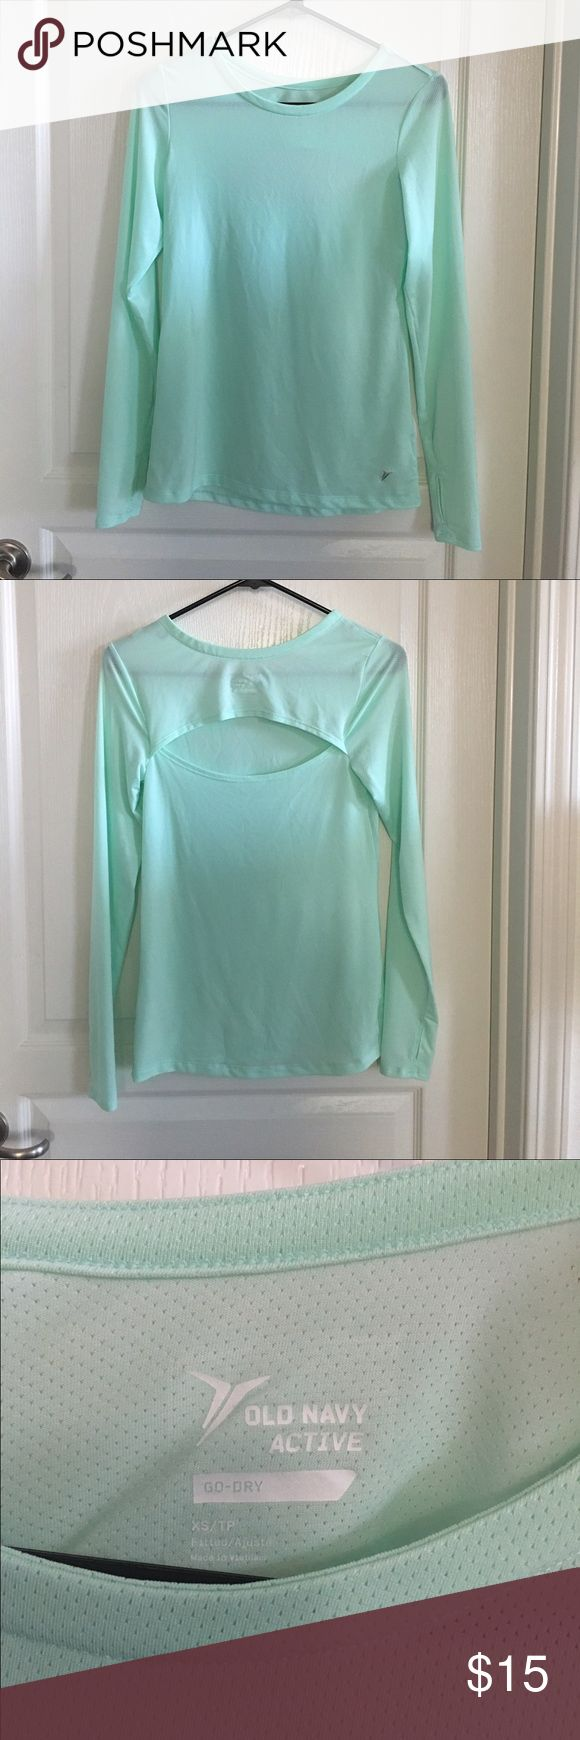 Old Navy Workout Top Size XS Lightweight workout top with cut out in the back and thumbholes. In excellent condition. No rips, tears or stains. No trades or PayPal. Old Navy Tops Tees - Long Sleeve